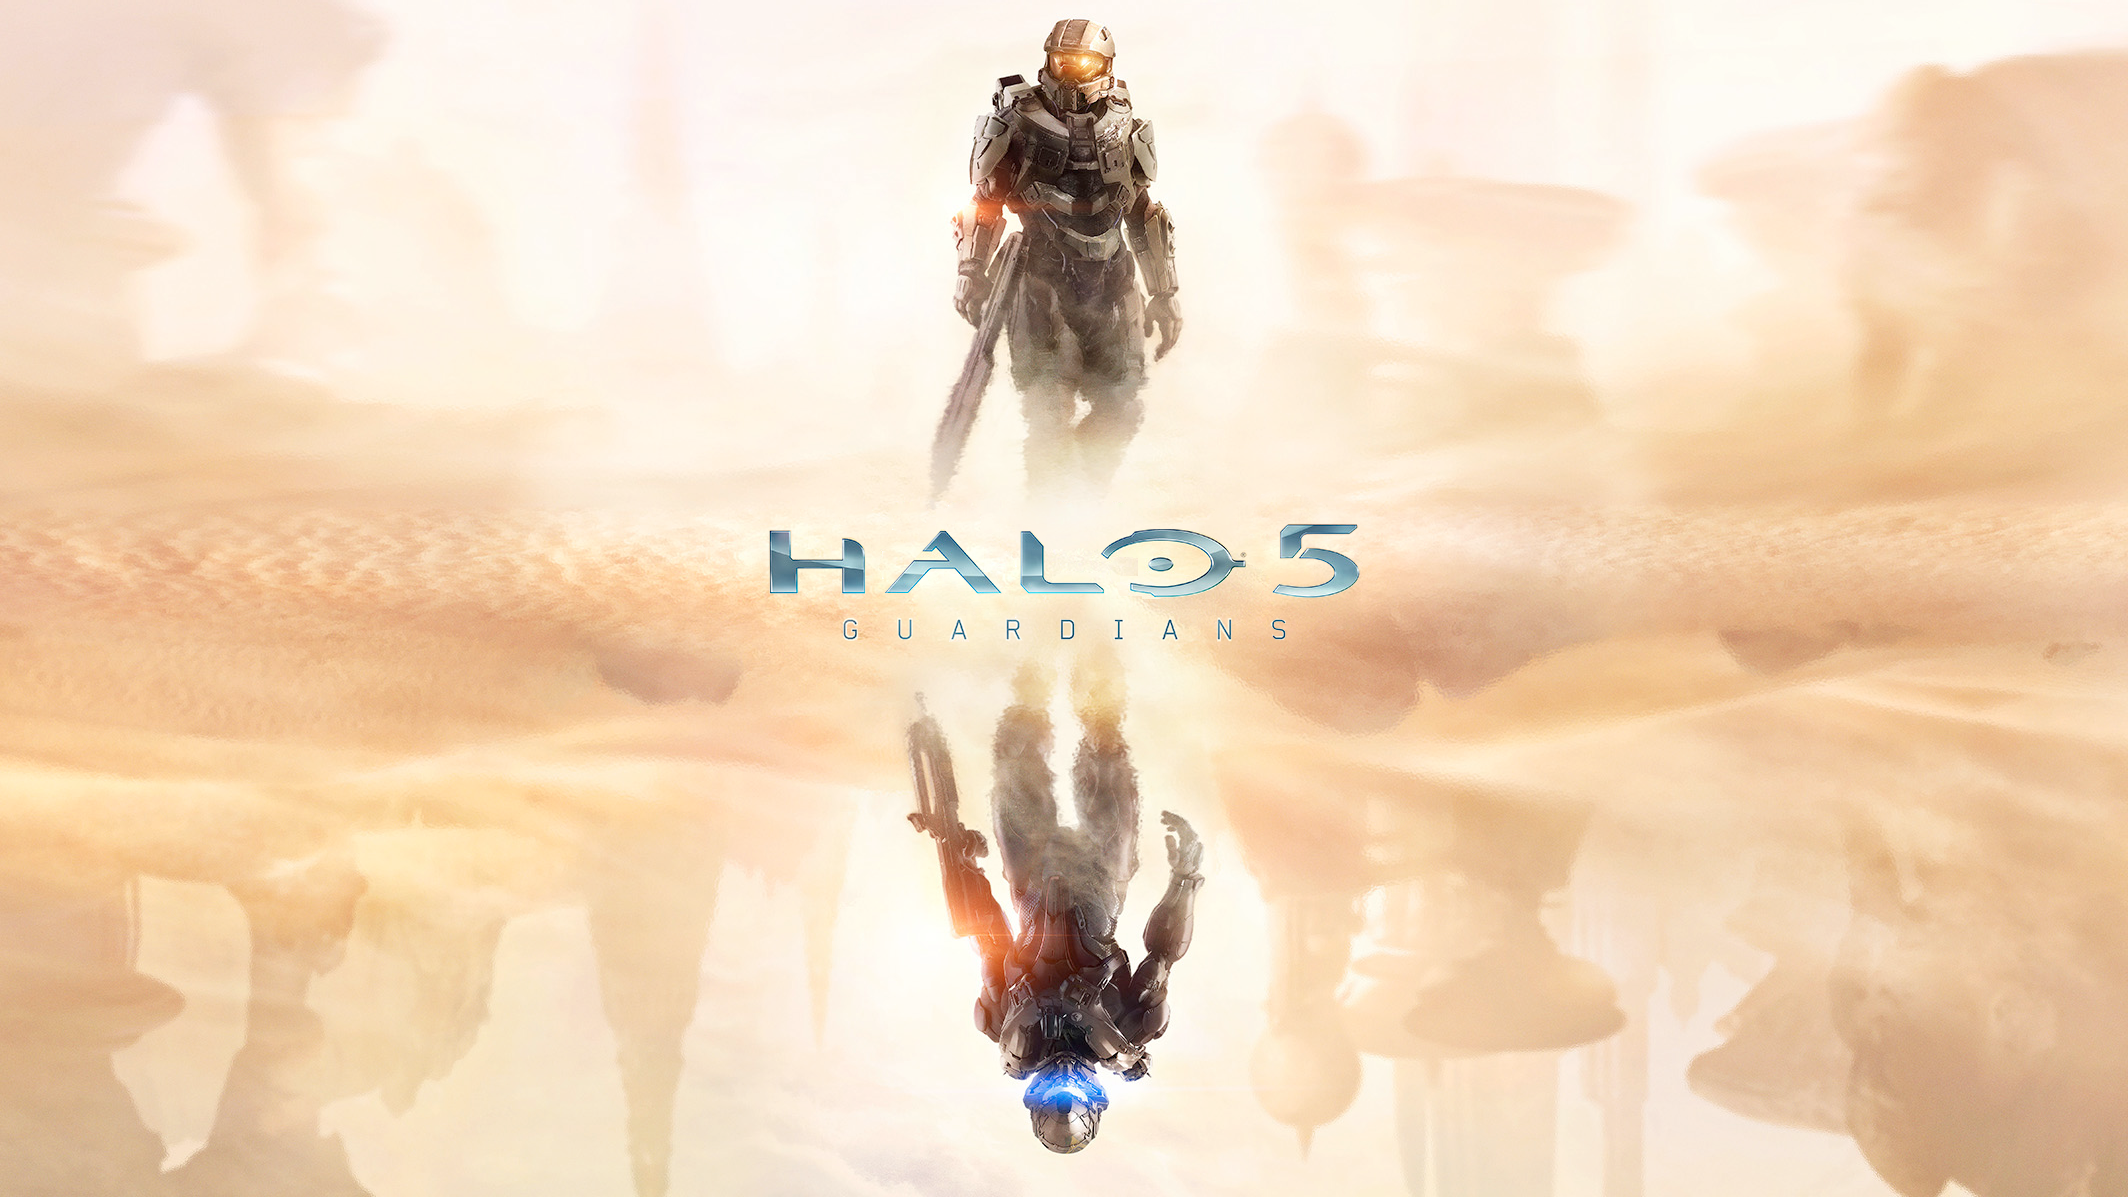 halo 5 guardians by rexadde fan art wallpaper games 2014 2015 rexadde 2128x1197